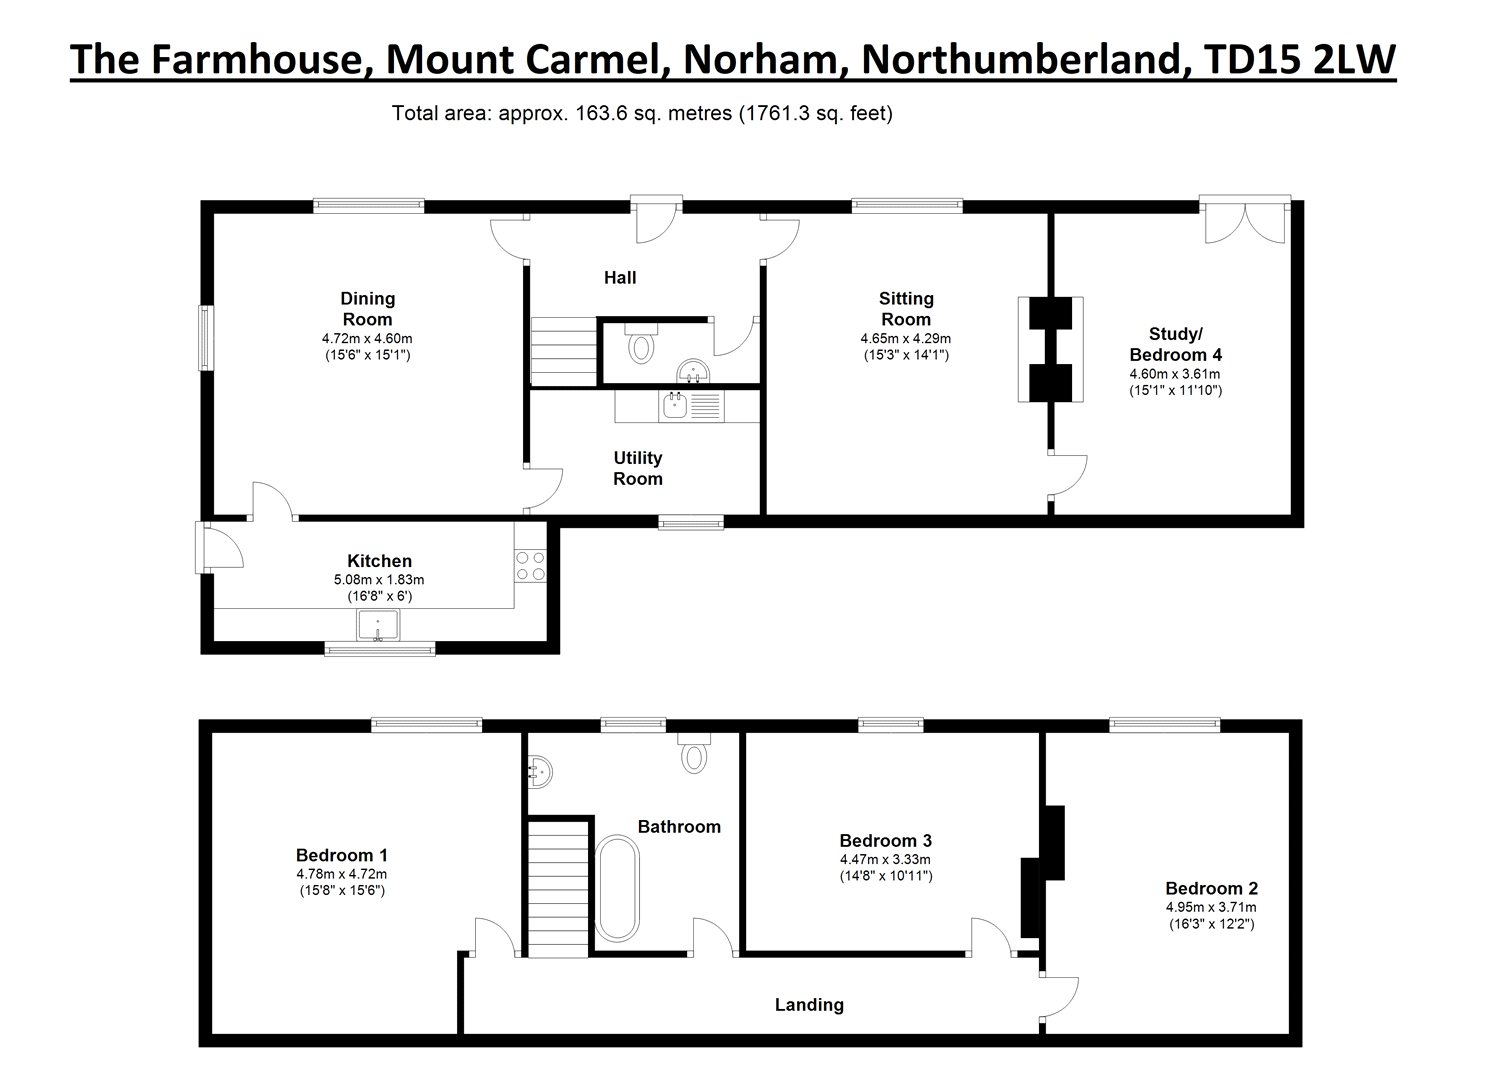 Floorplans for Mount Carmel, Norham, Northumberland, TD15